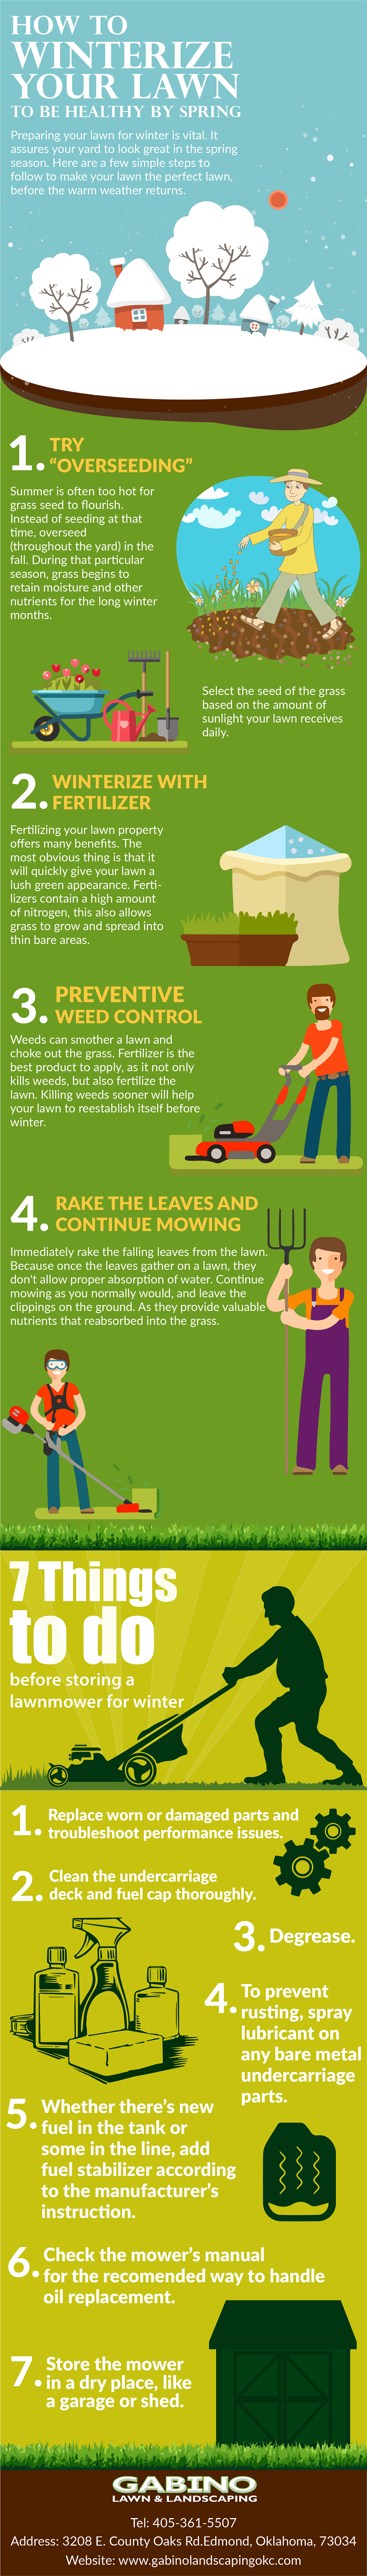 How To Winterize Your Lawn.png